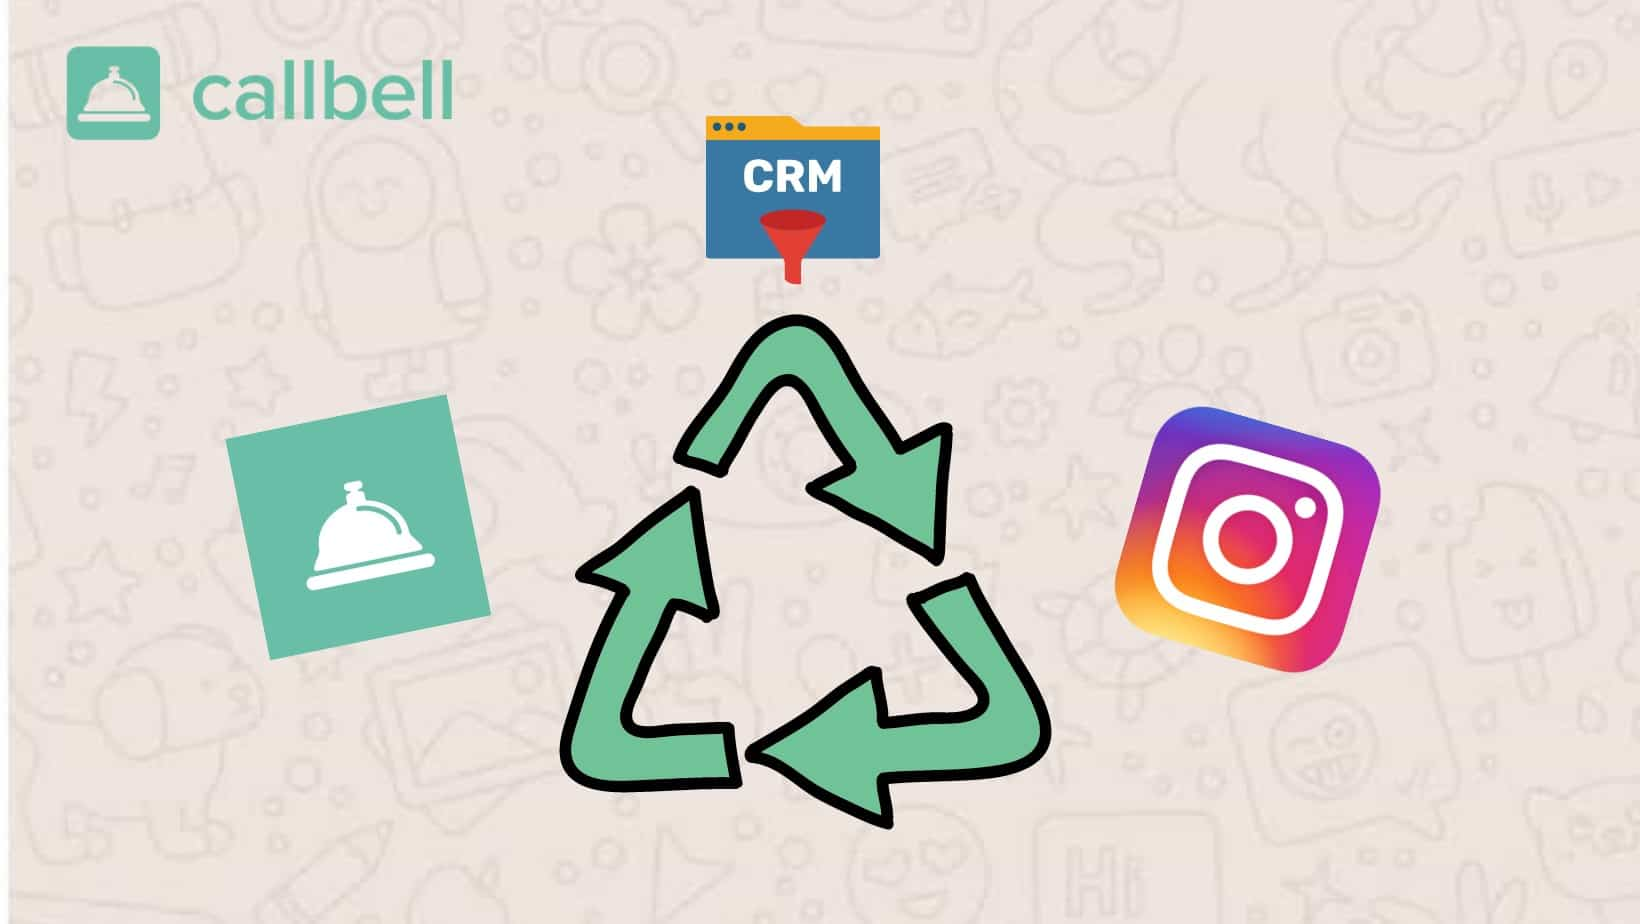 How to turn Instagram Direct into a CRM